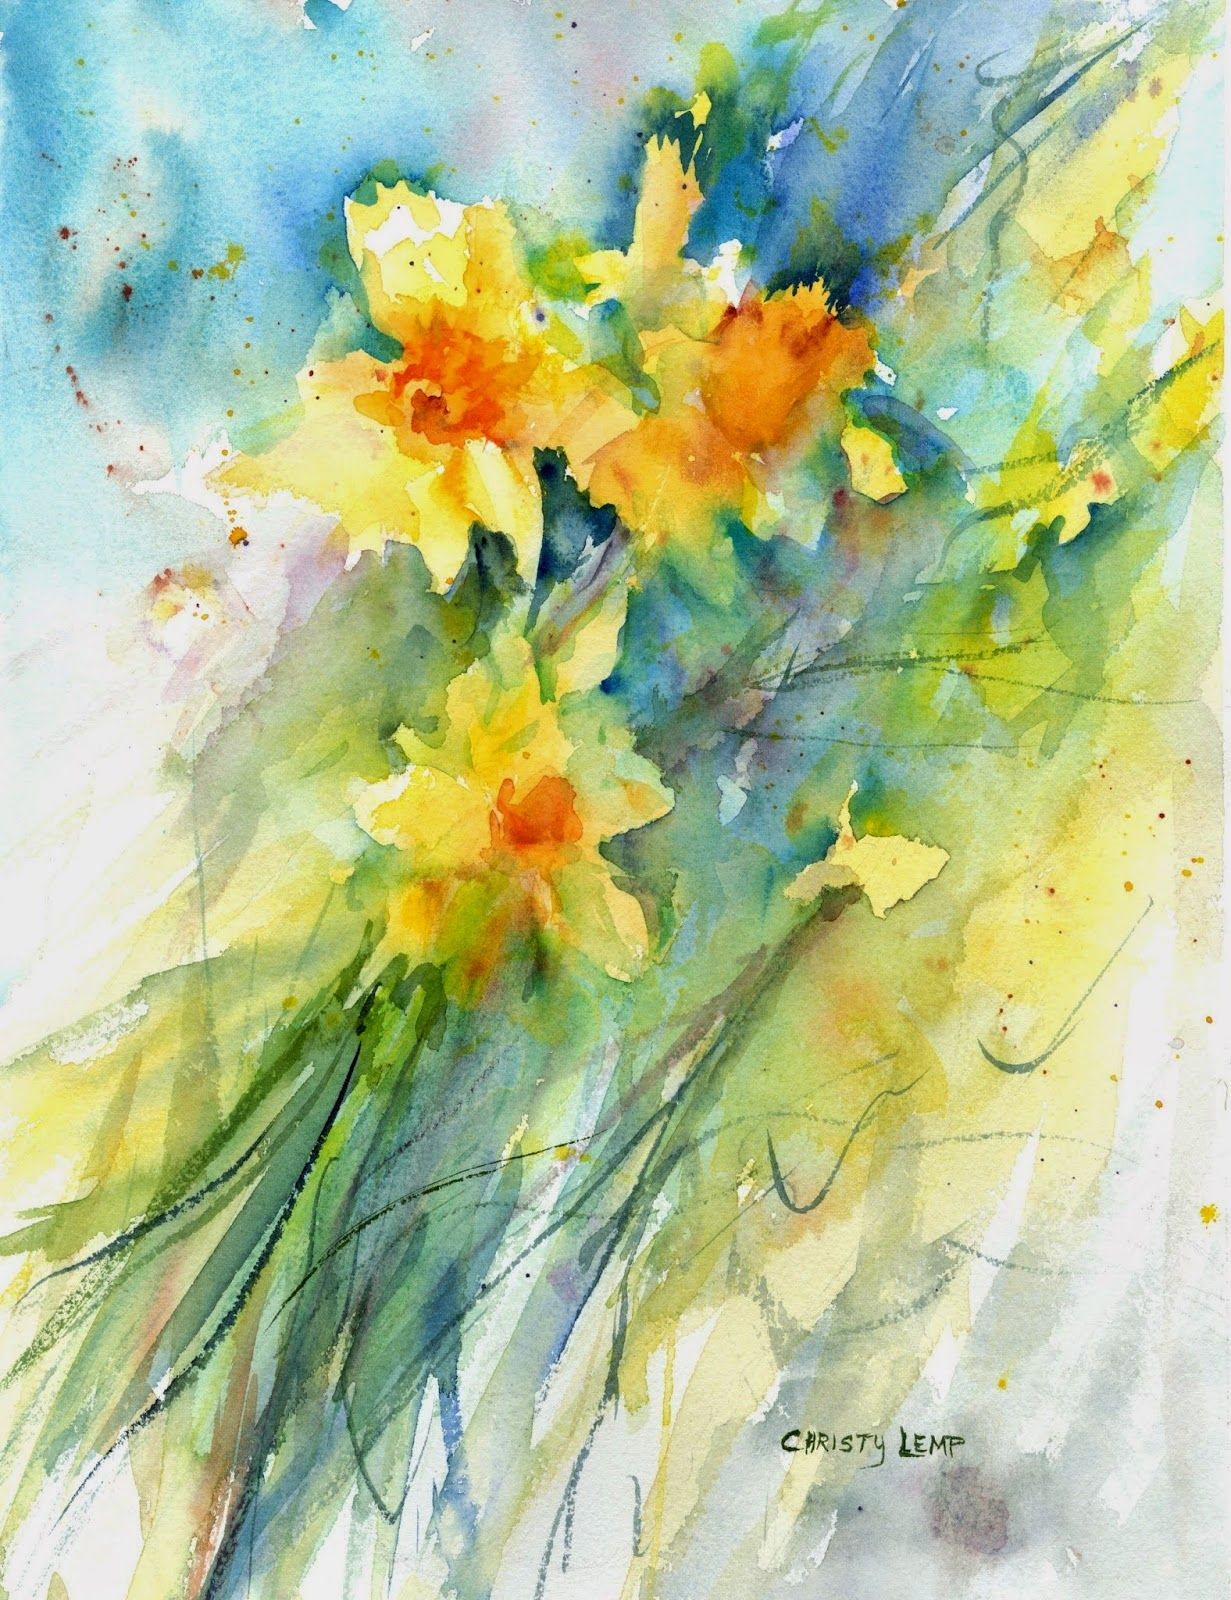 Christy Lemp Watercolor Aquarelle Fleurs Aquarelle Florale